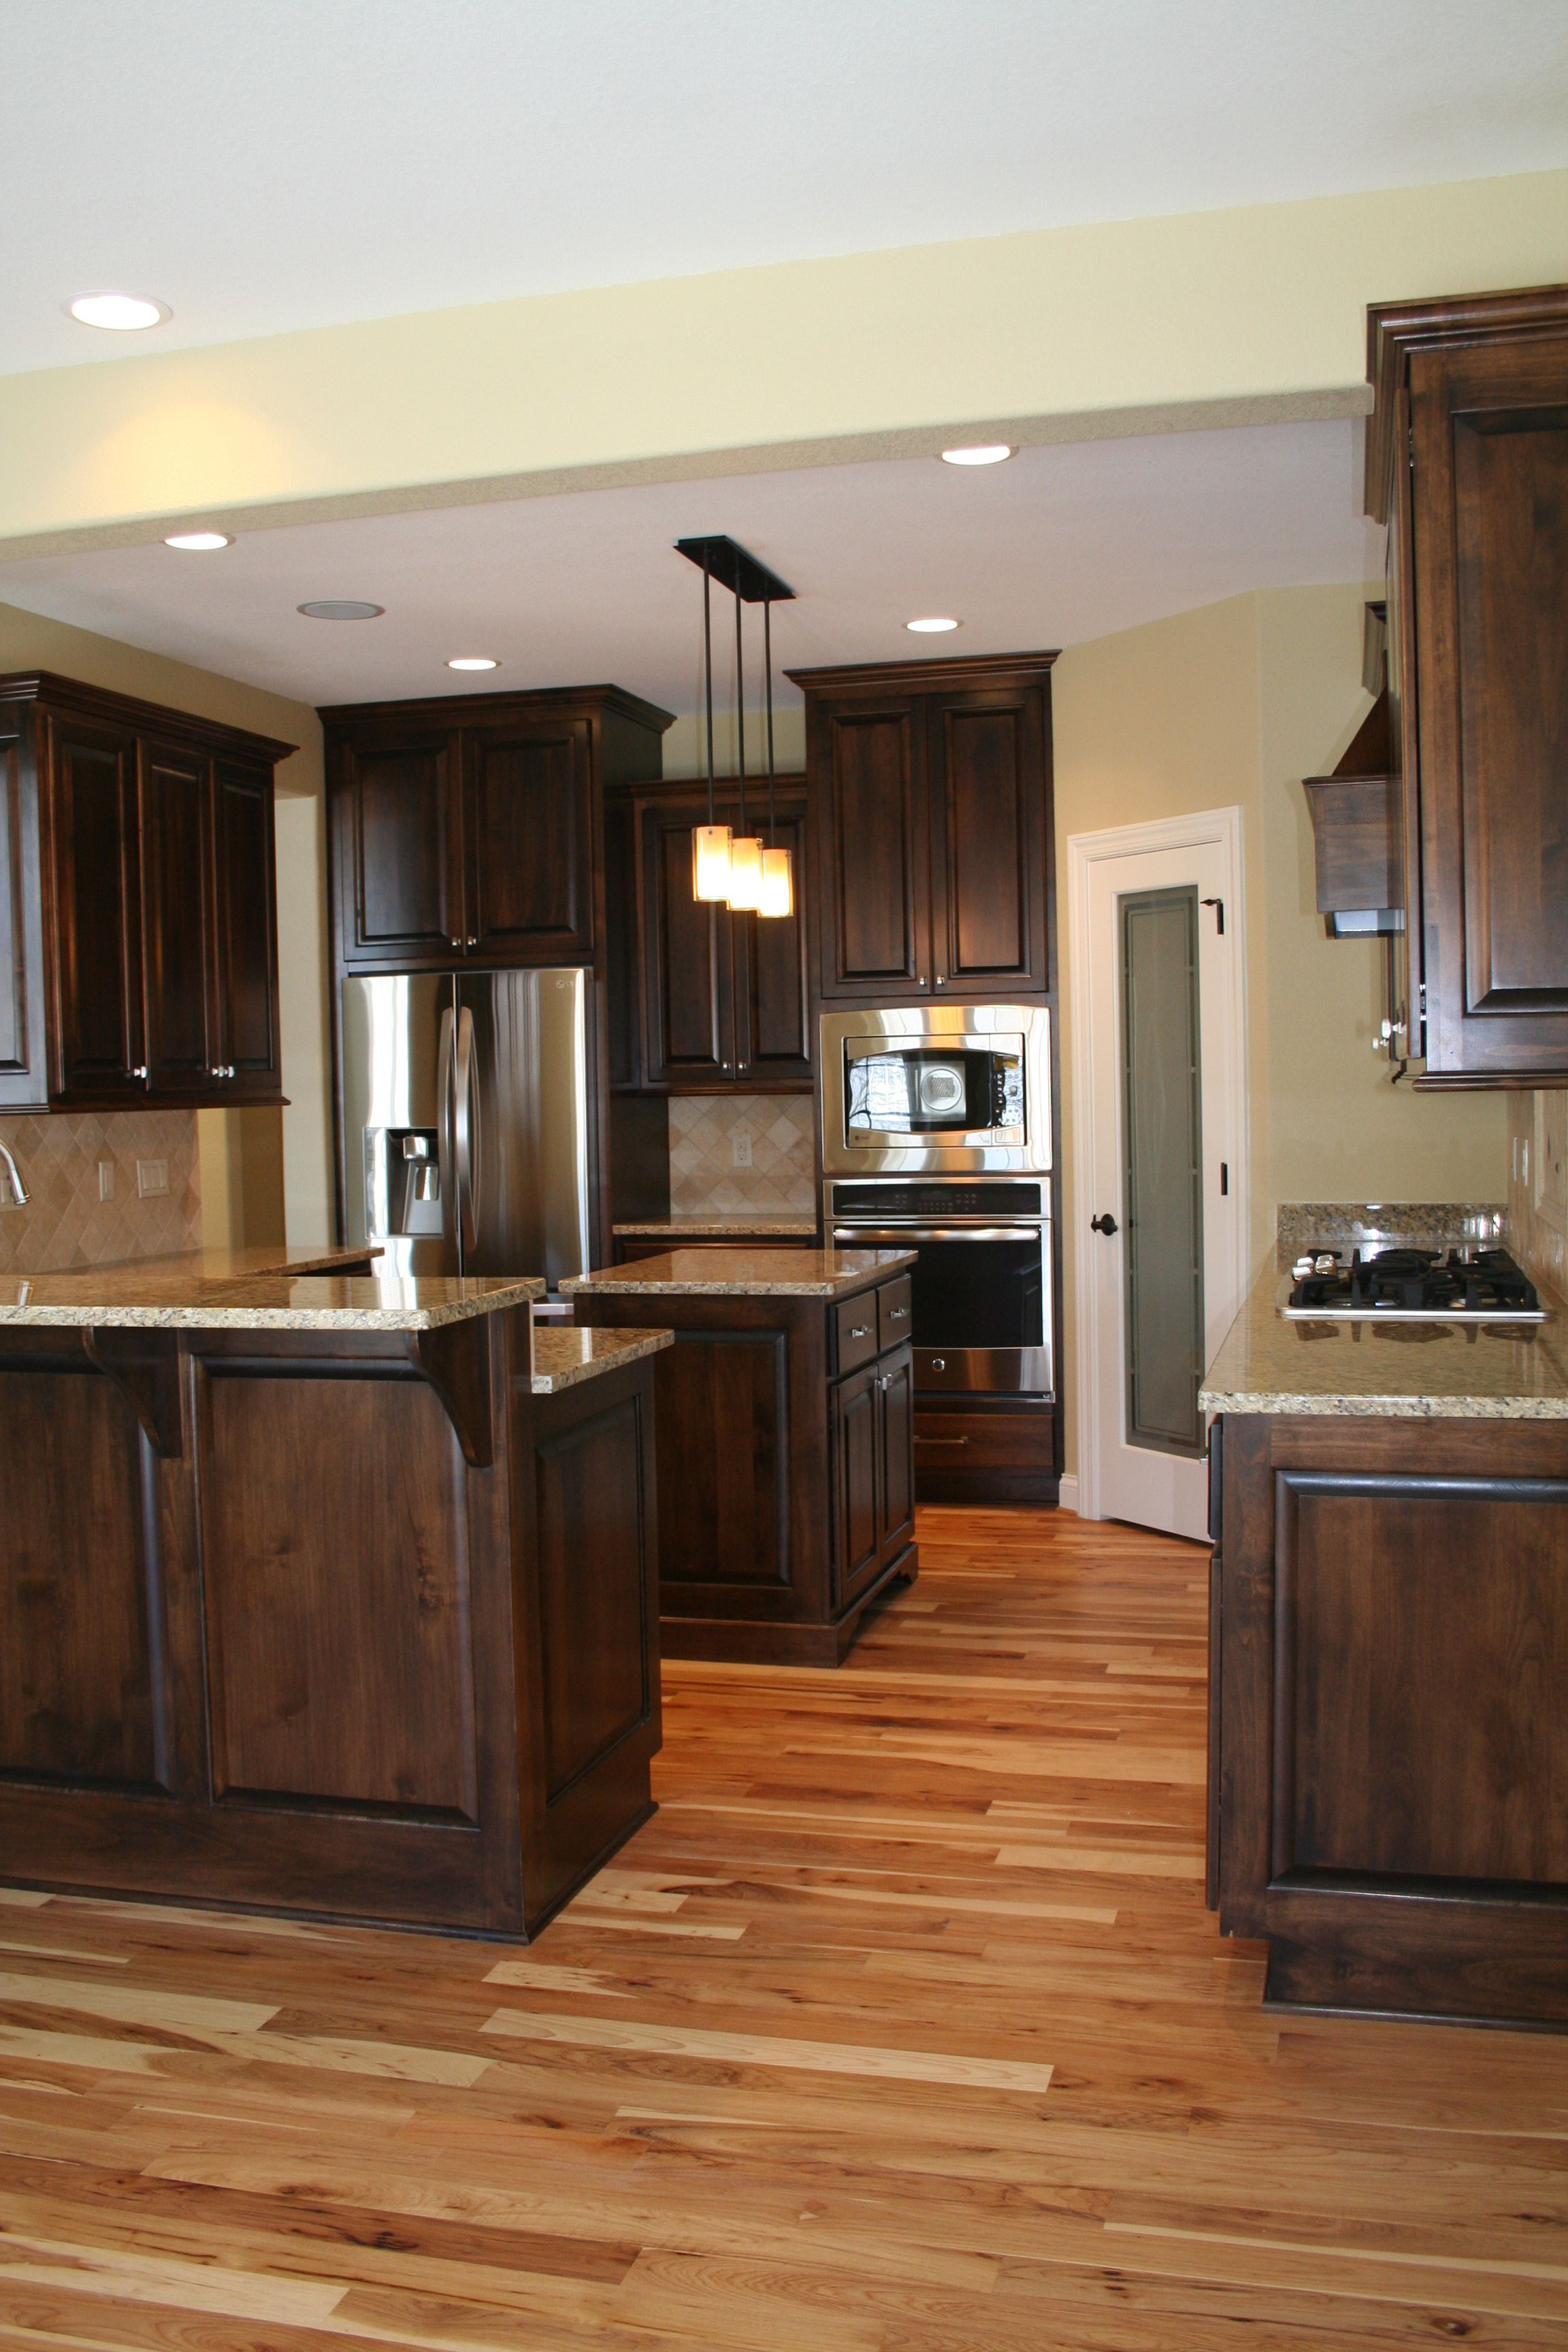 Best Alder Wood Cabinets Stainless Steel Appliances And 640 x 480